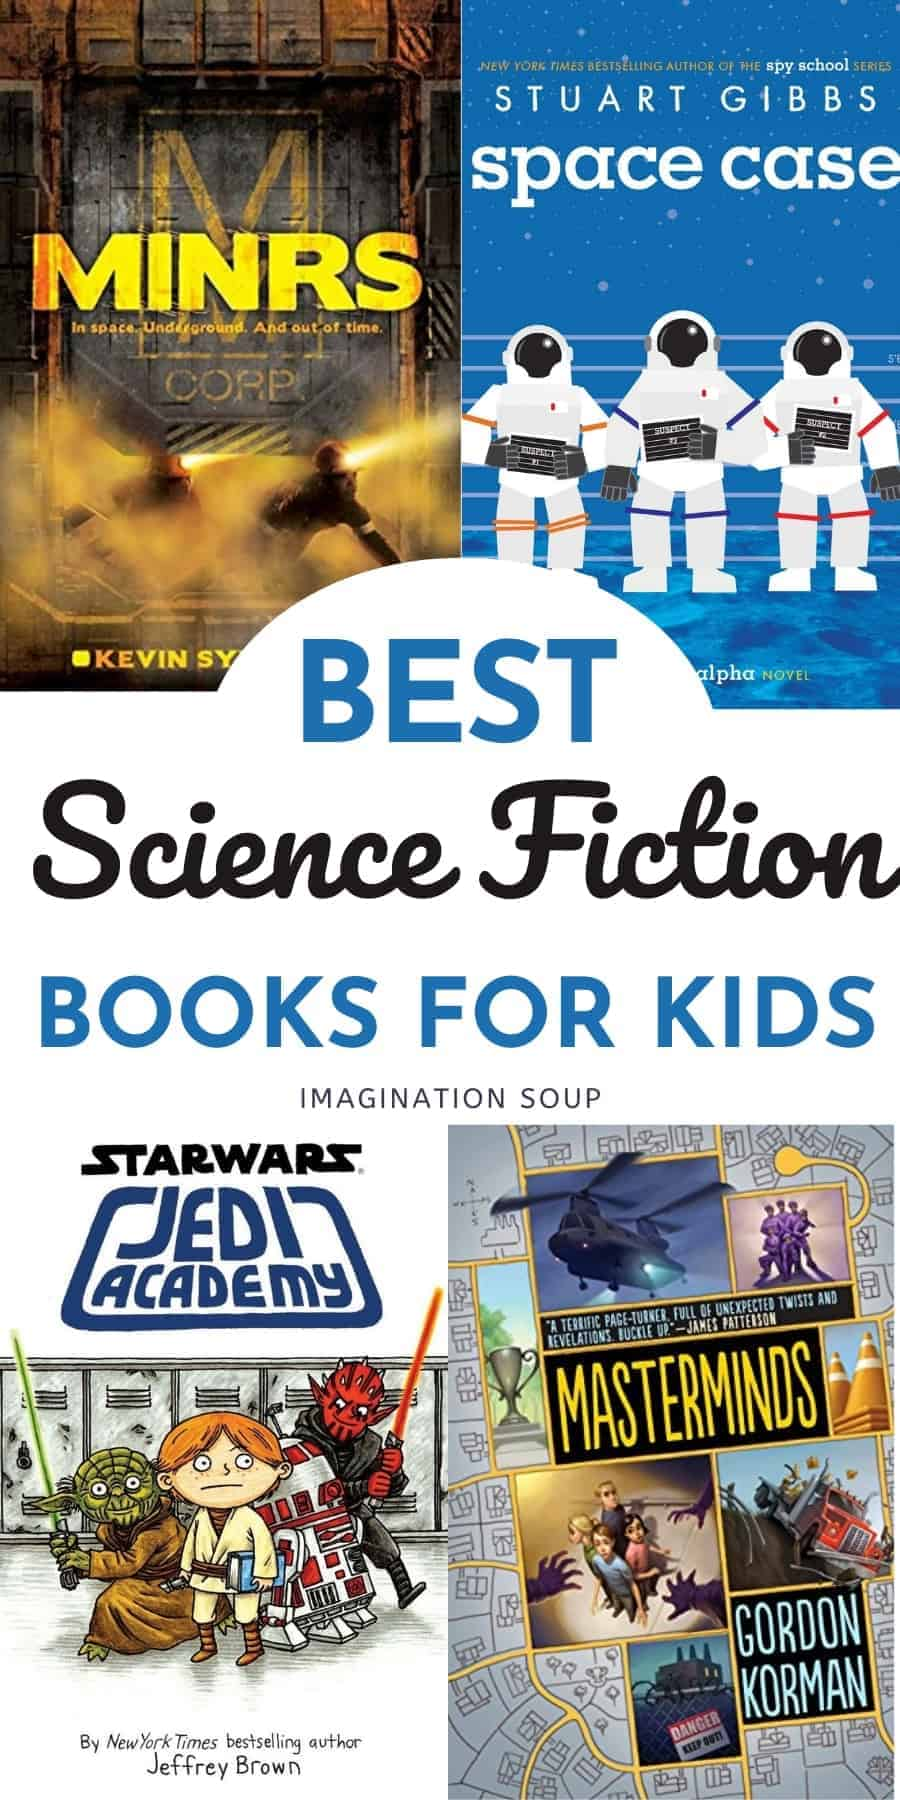 Best Science Fiction Books for Kids